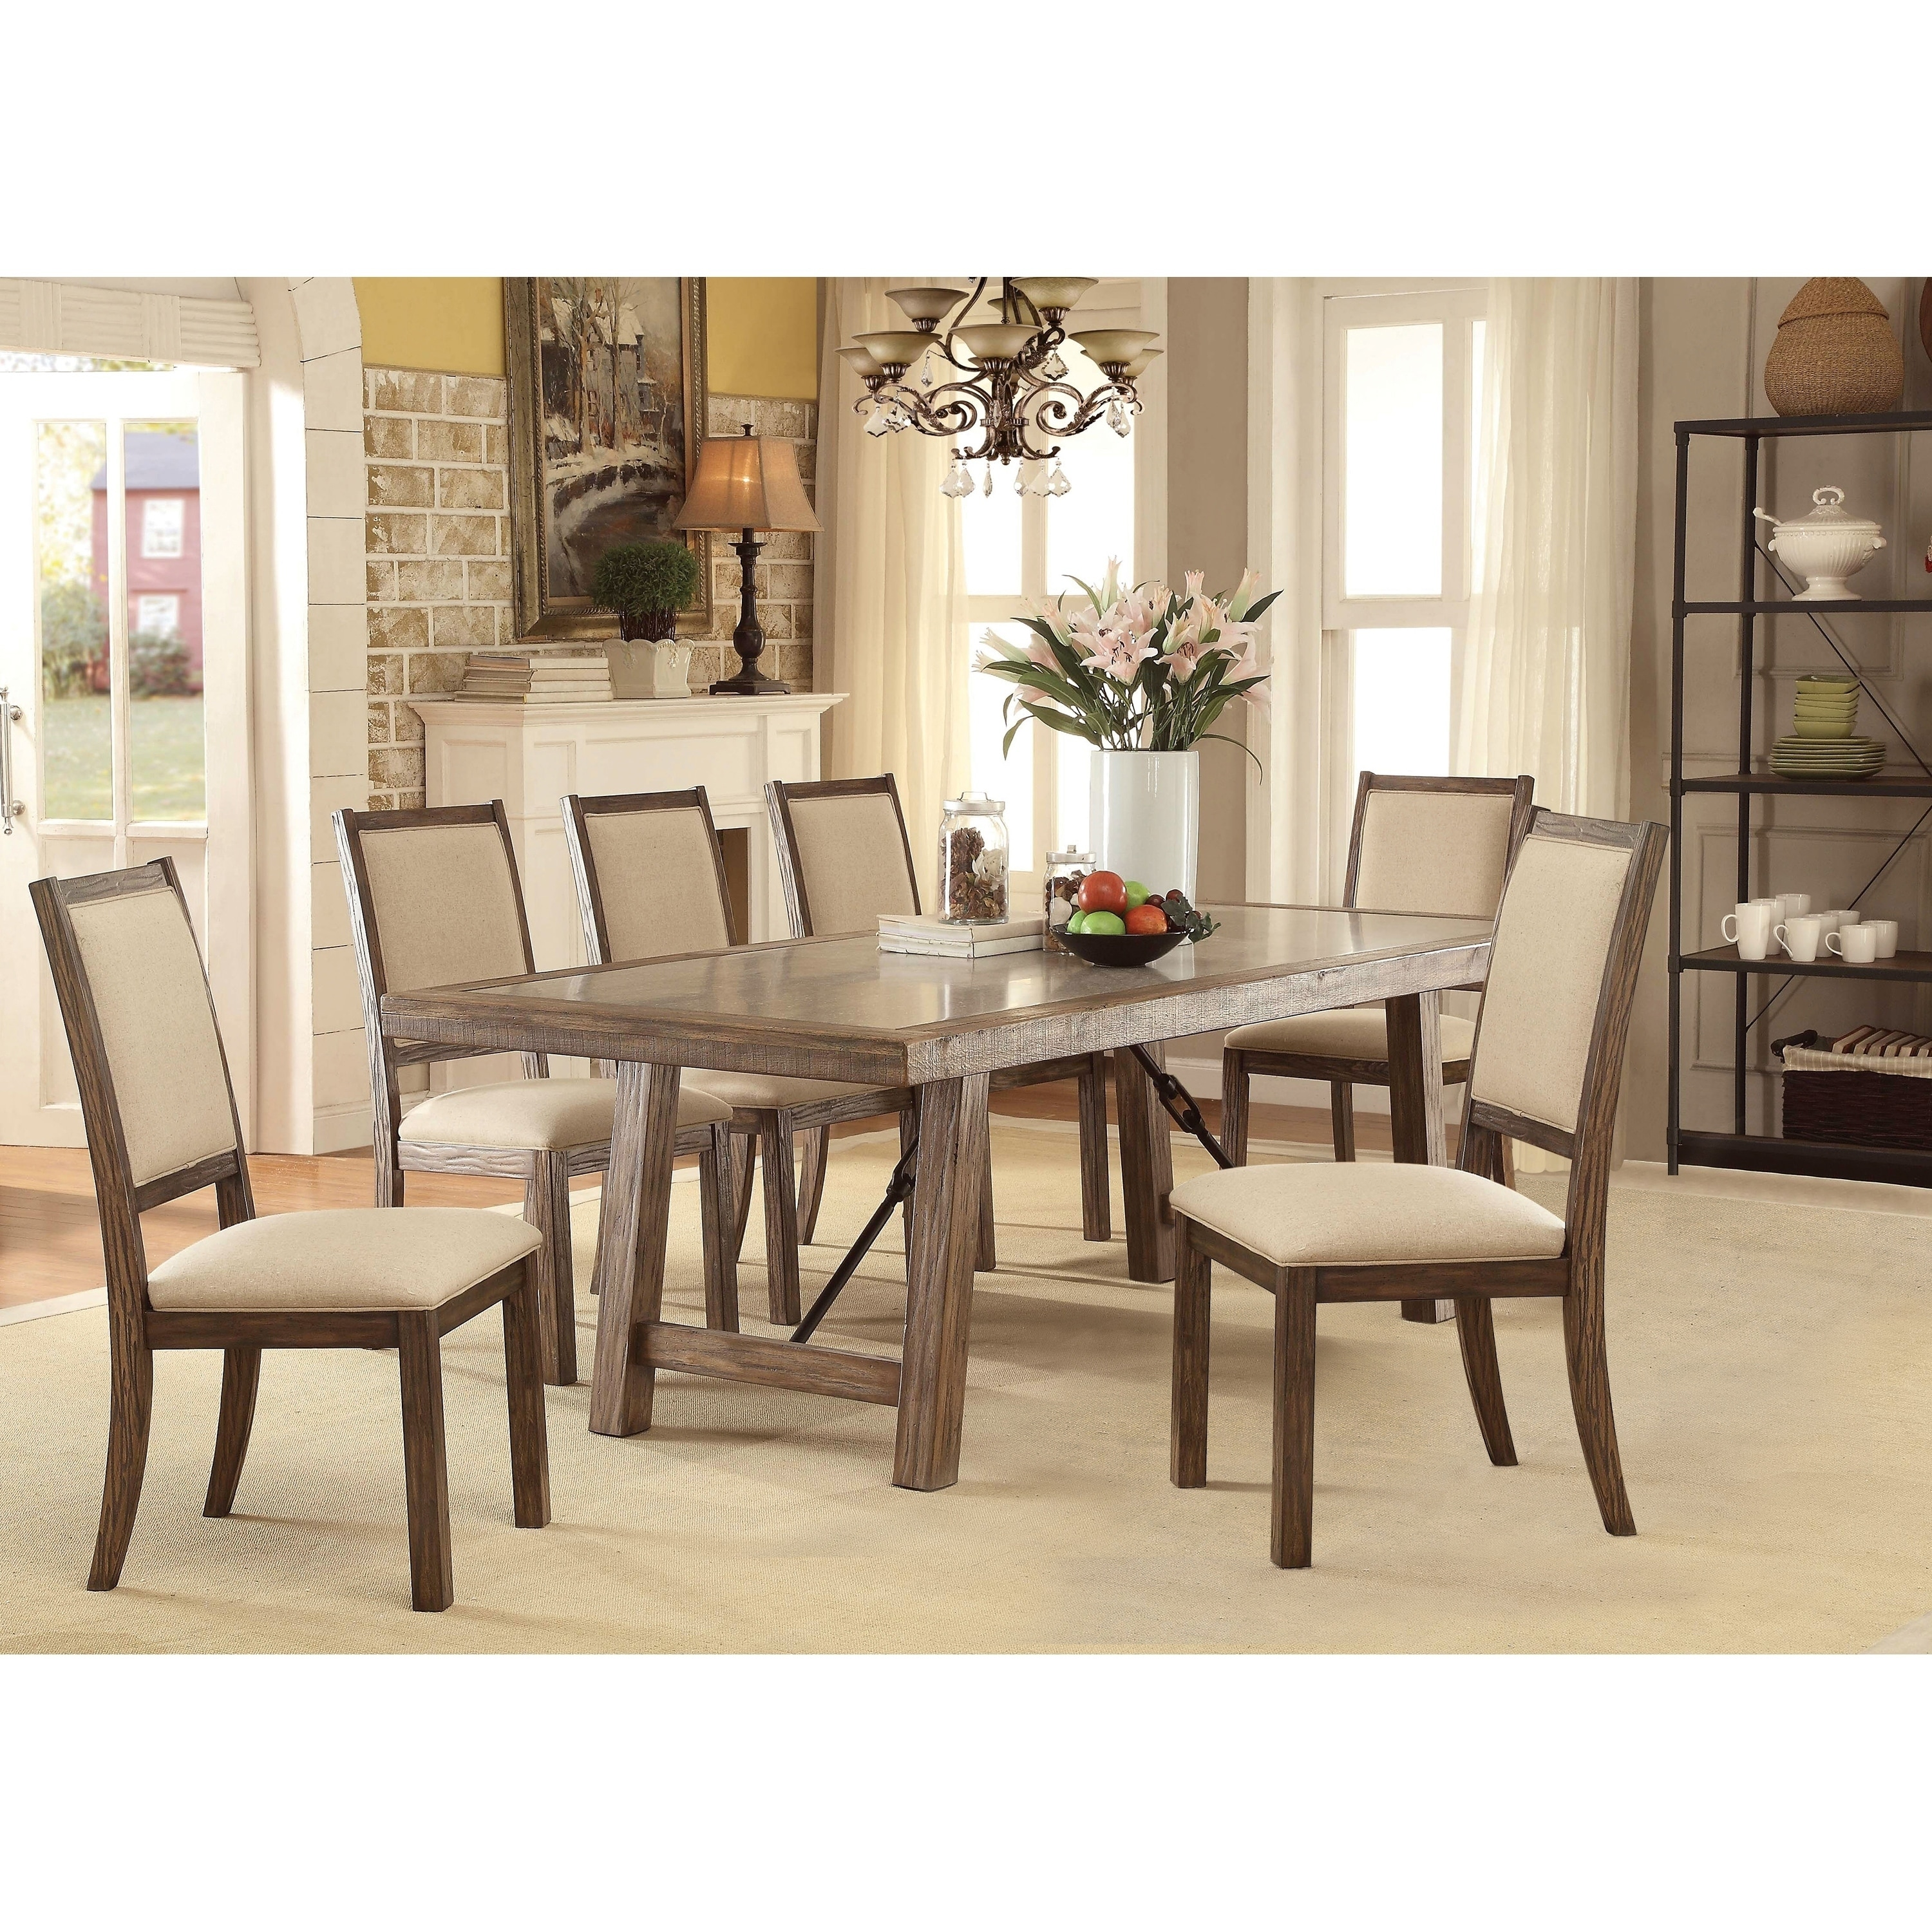 Furniture Of America Fitzgerald 7 Piece Transitional Dining Table Set